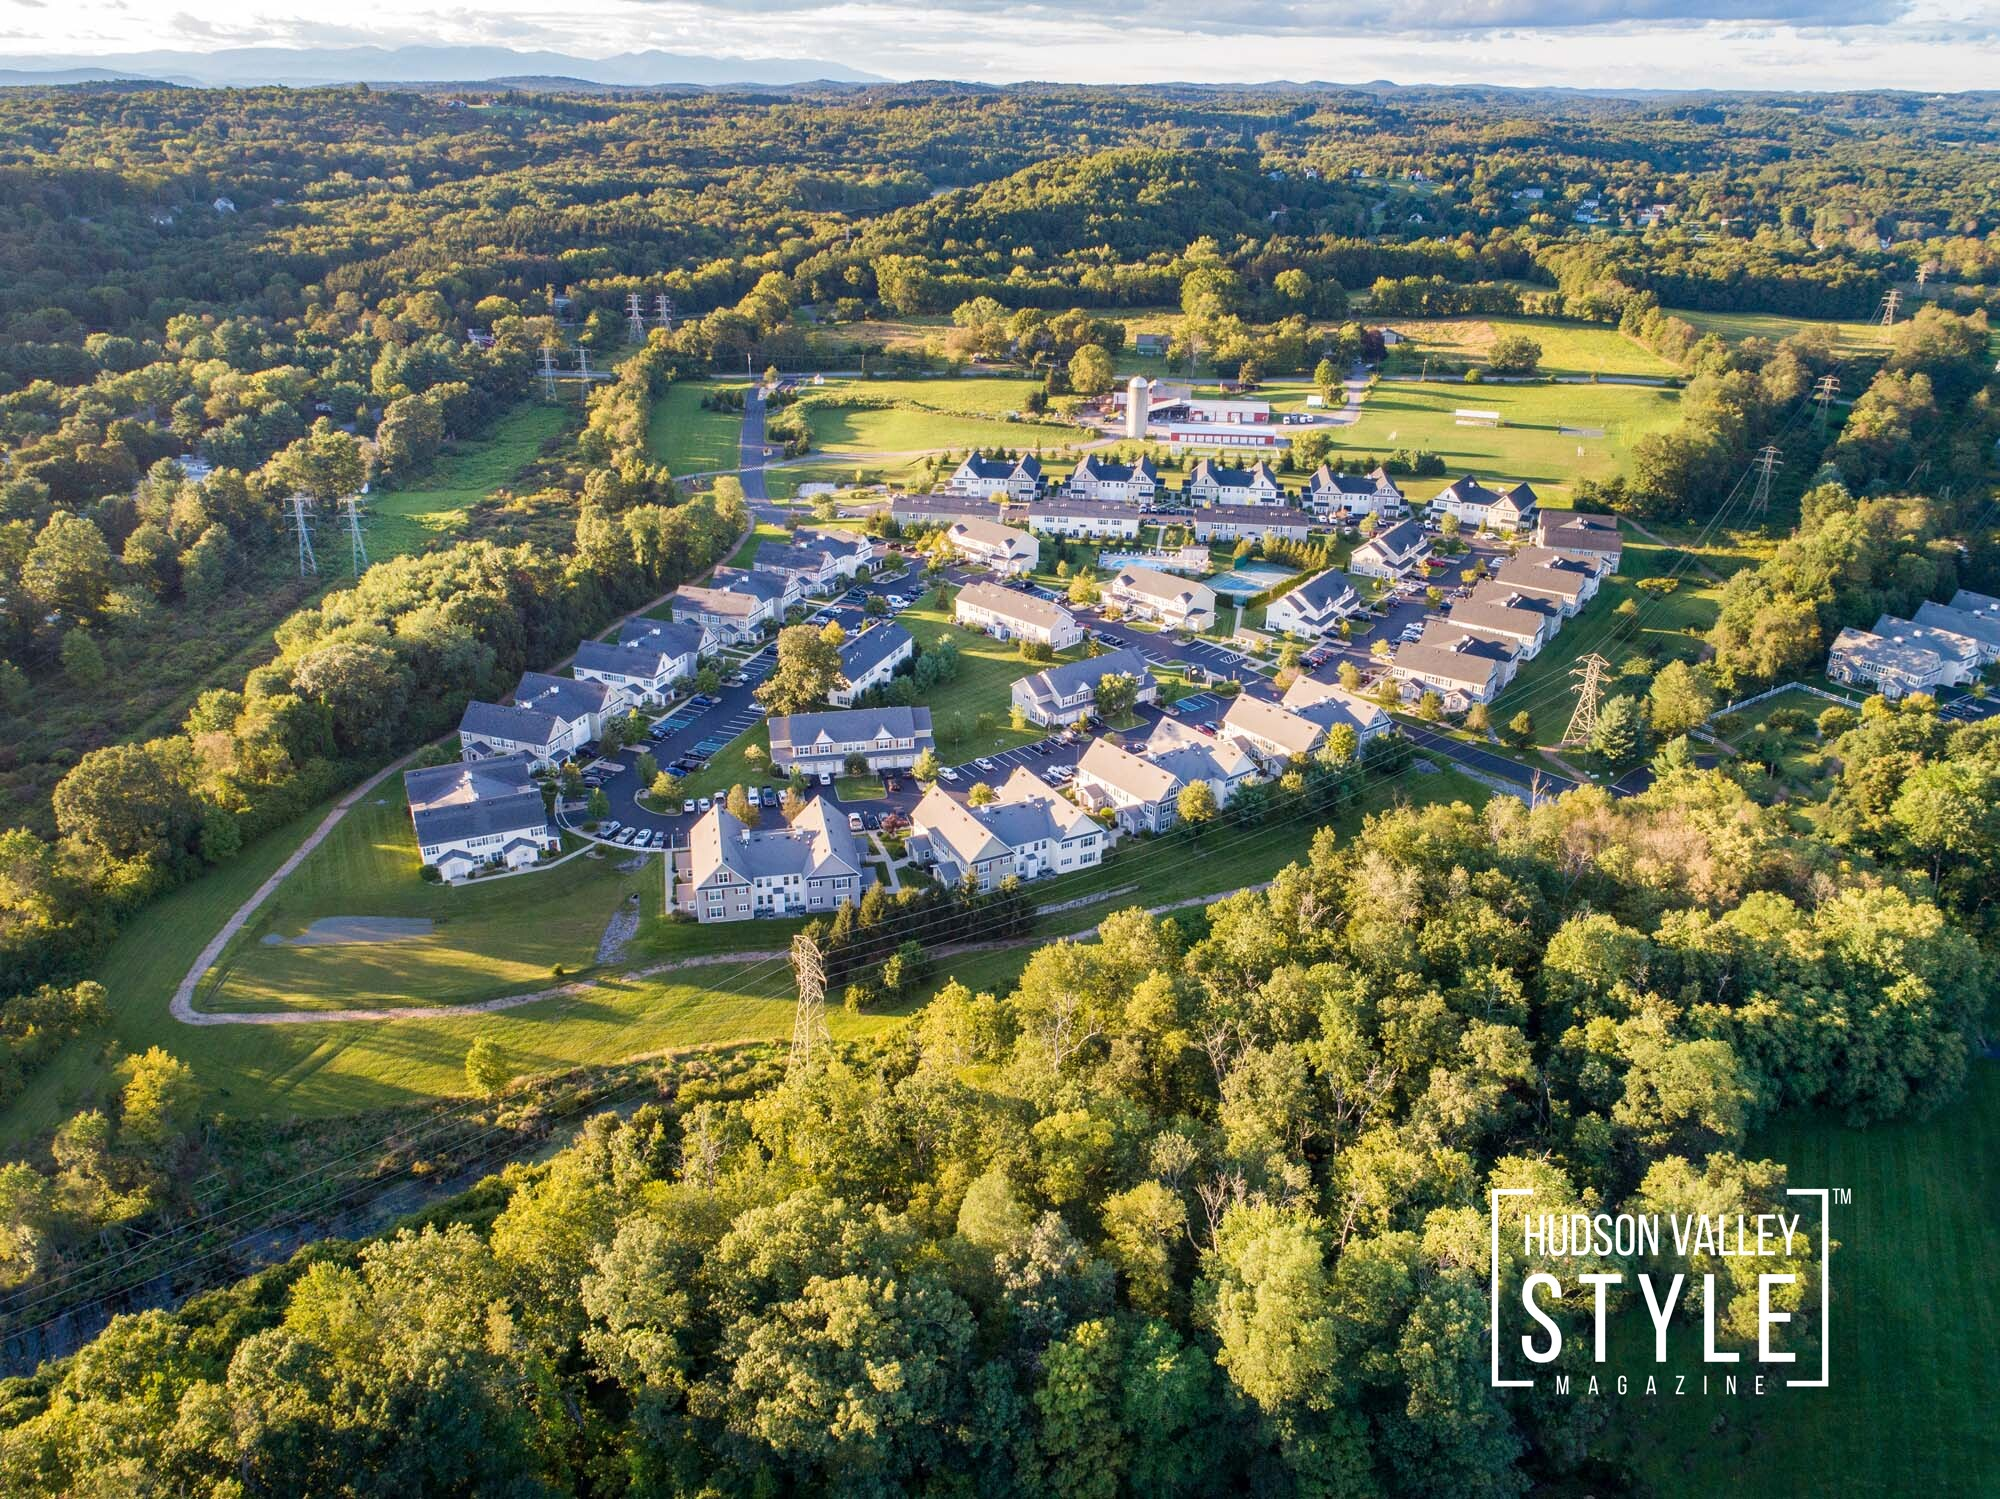 Hudson Valley Real Estate and Aerial Photography Galley: Brookside Meadows Luxury Rental Community in Pleasant Valley, NY – Real Estate Photography Project by Duncan Avenue Studios